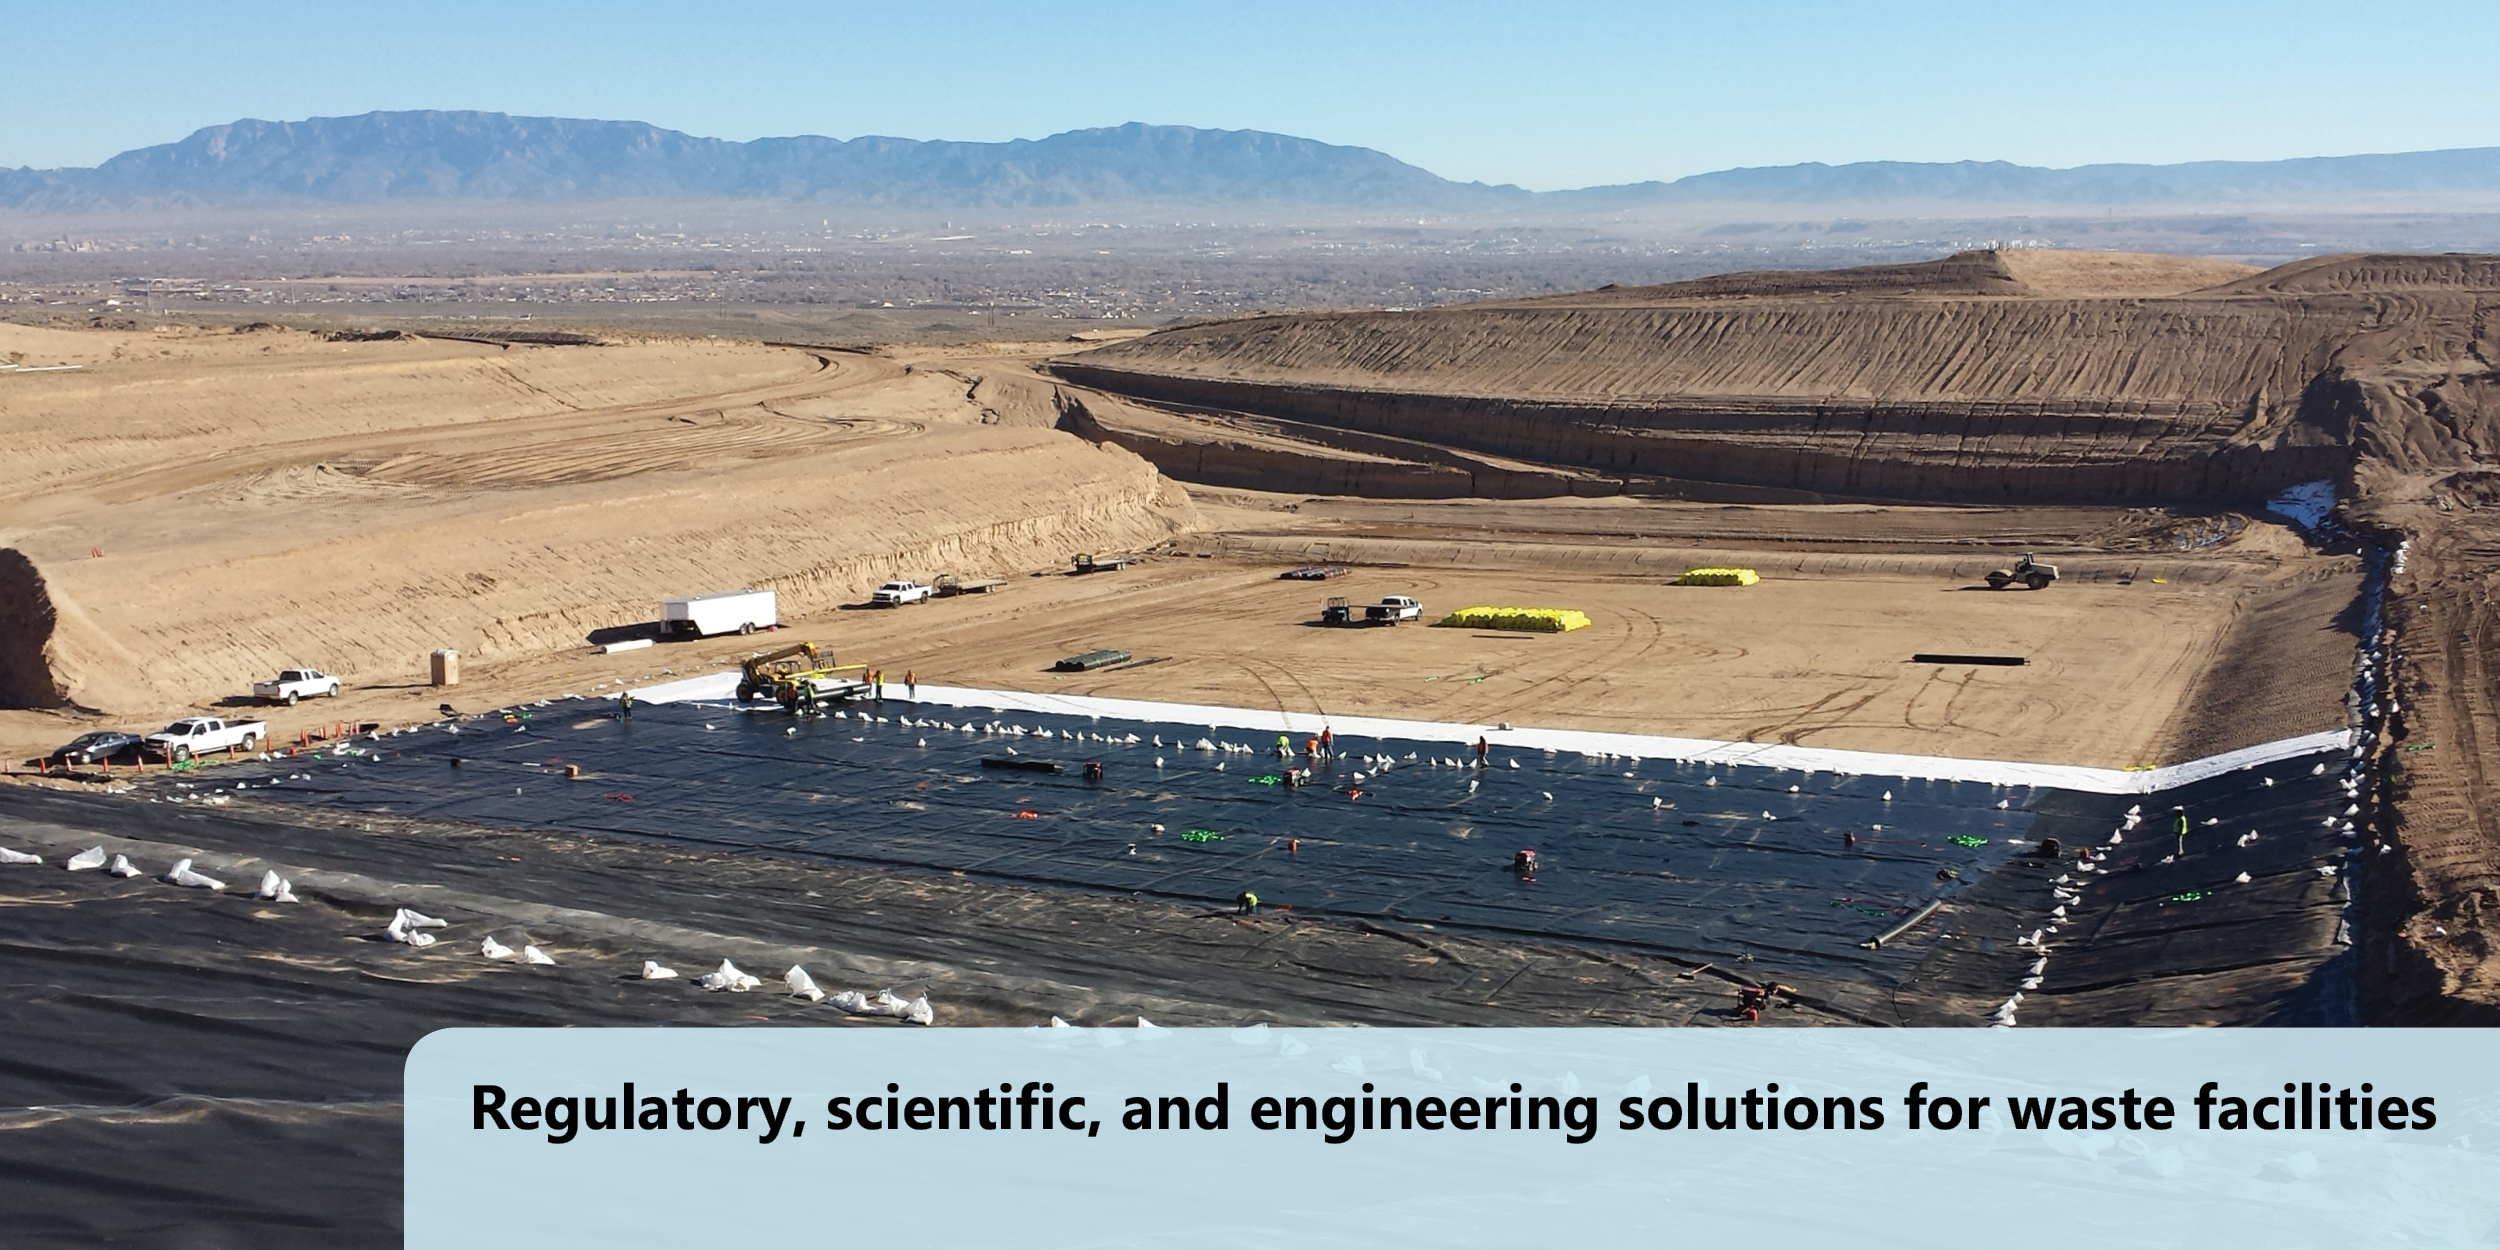 Regulatory, scientific, and engineering solutions for waste facilities